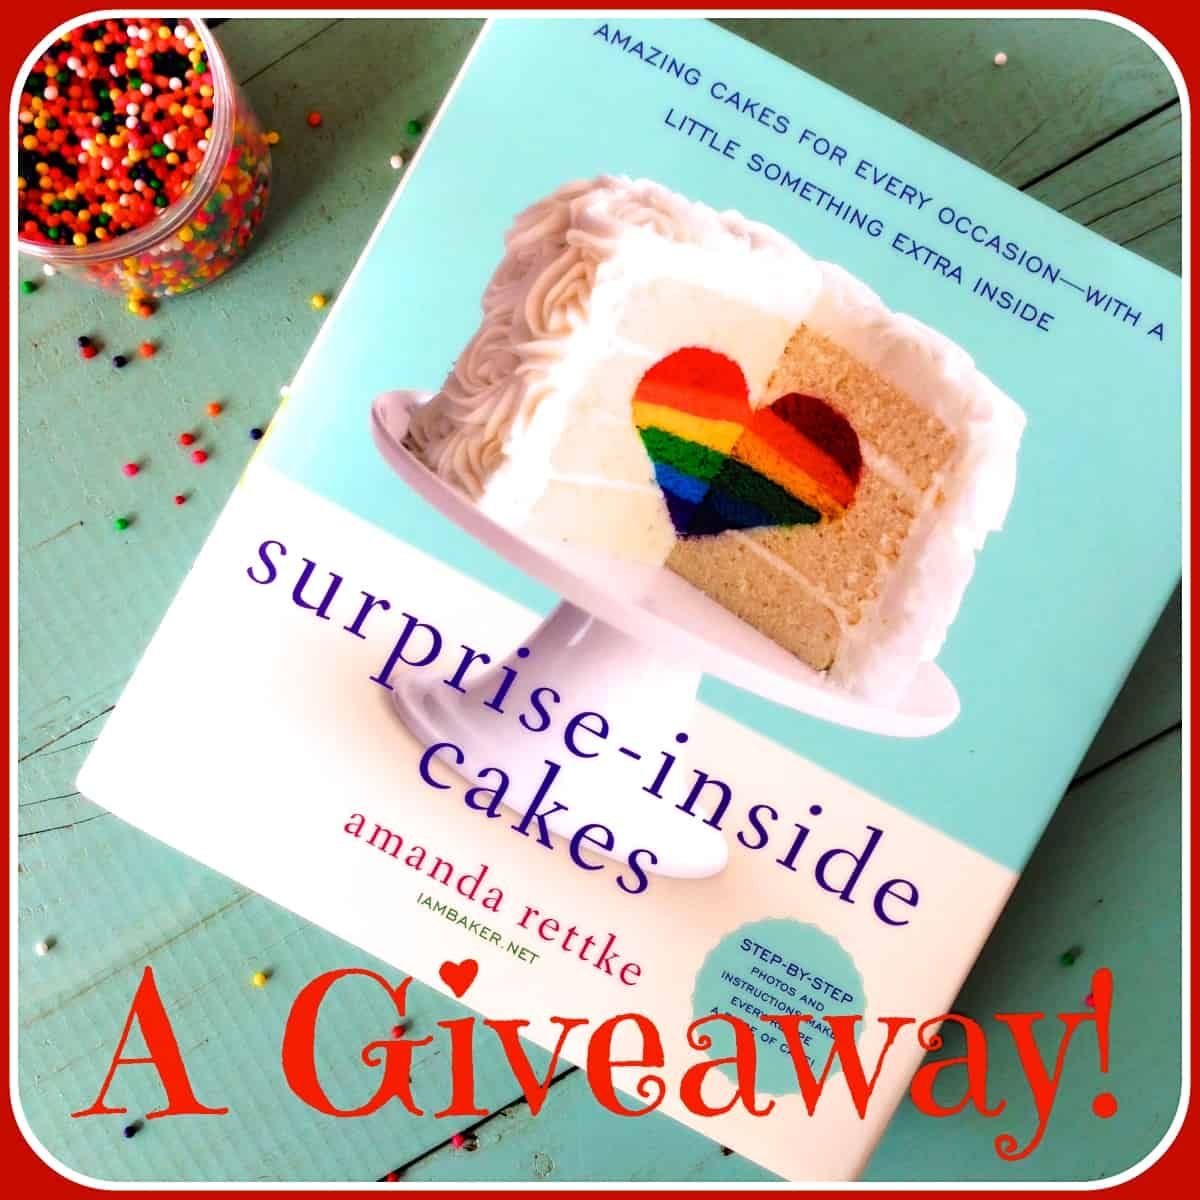 A #giveaway! WIN a copy of #SurpriseInsideCakes by i am baker. Enter at afarmgirlsdabbles.com!